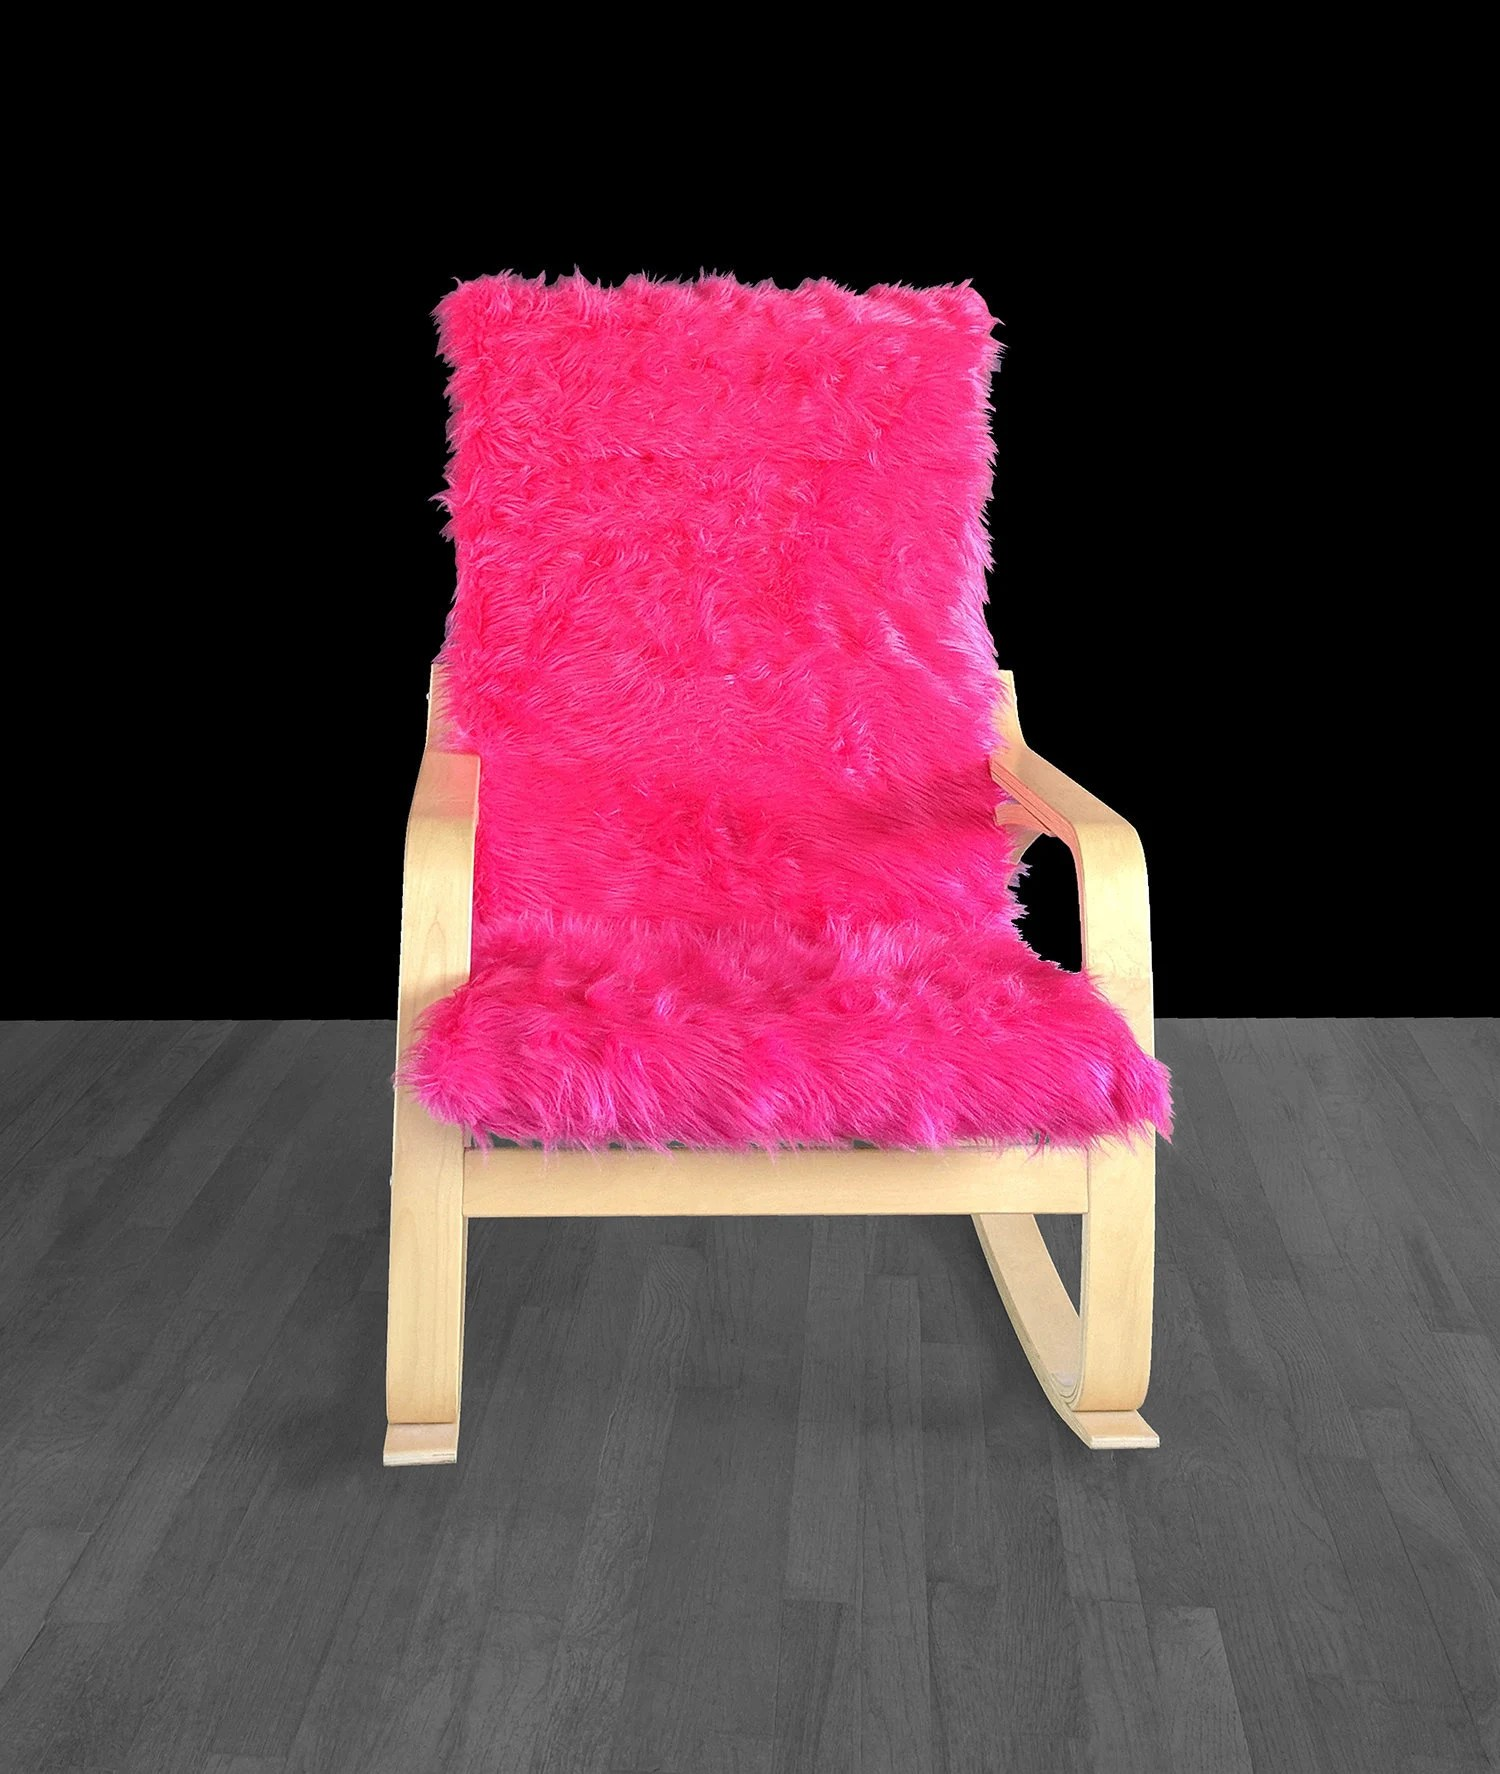 pink slipcover chair white yard chairs hot fur ikea poang cushion custom gallery photo